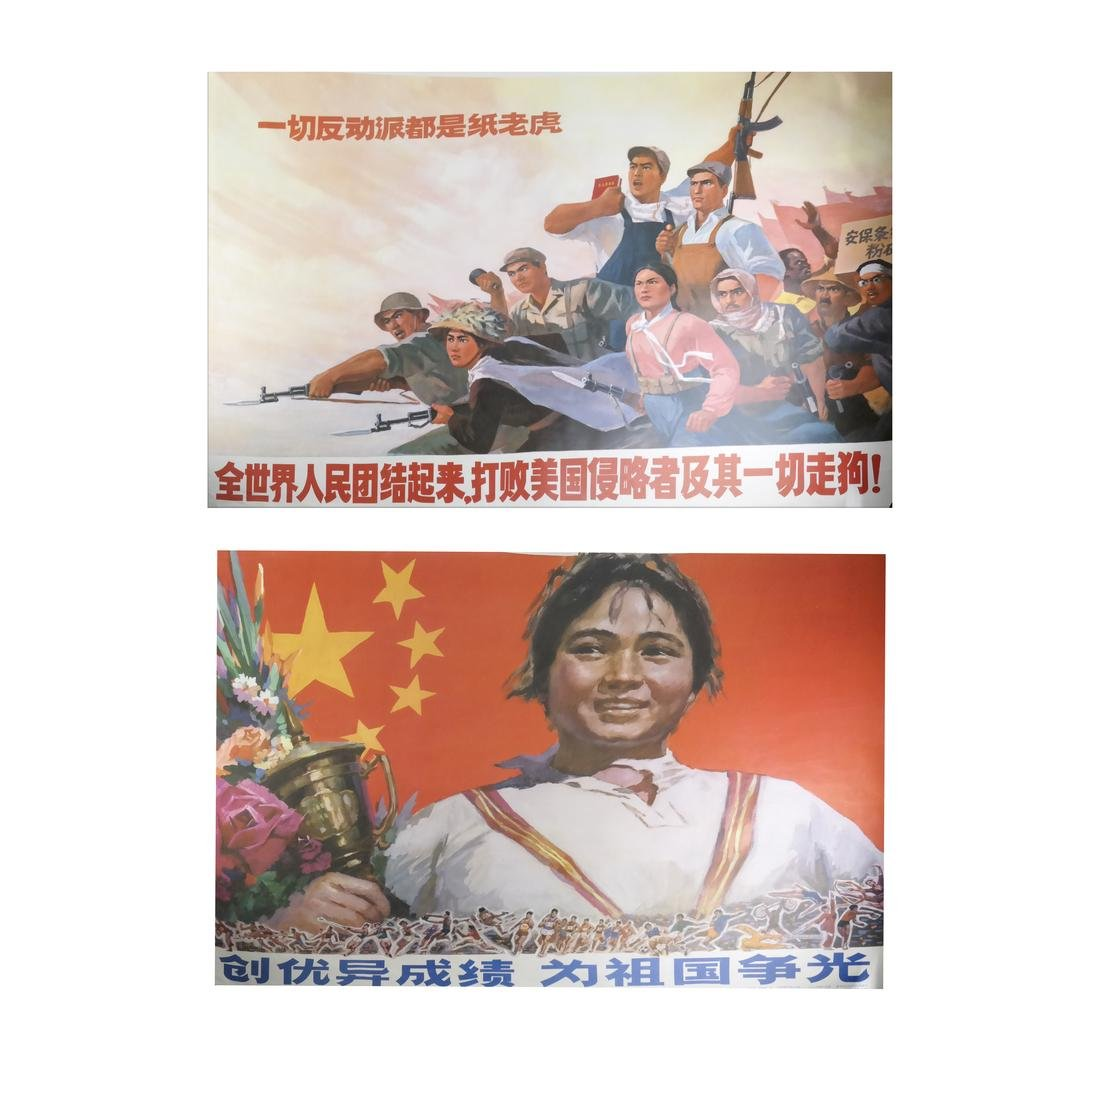 Two Chinese Communist Revolutionary Posters